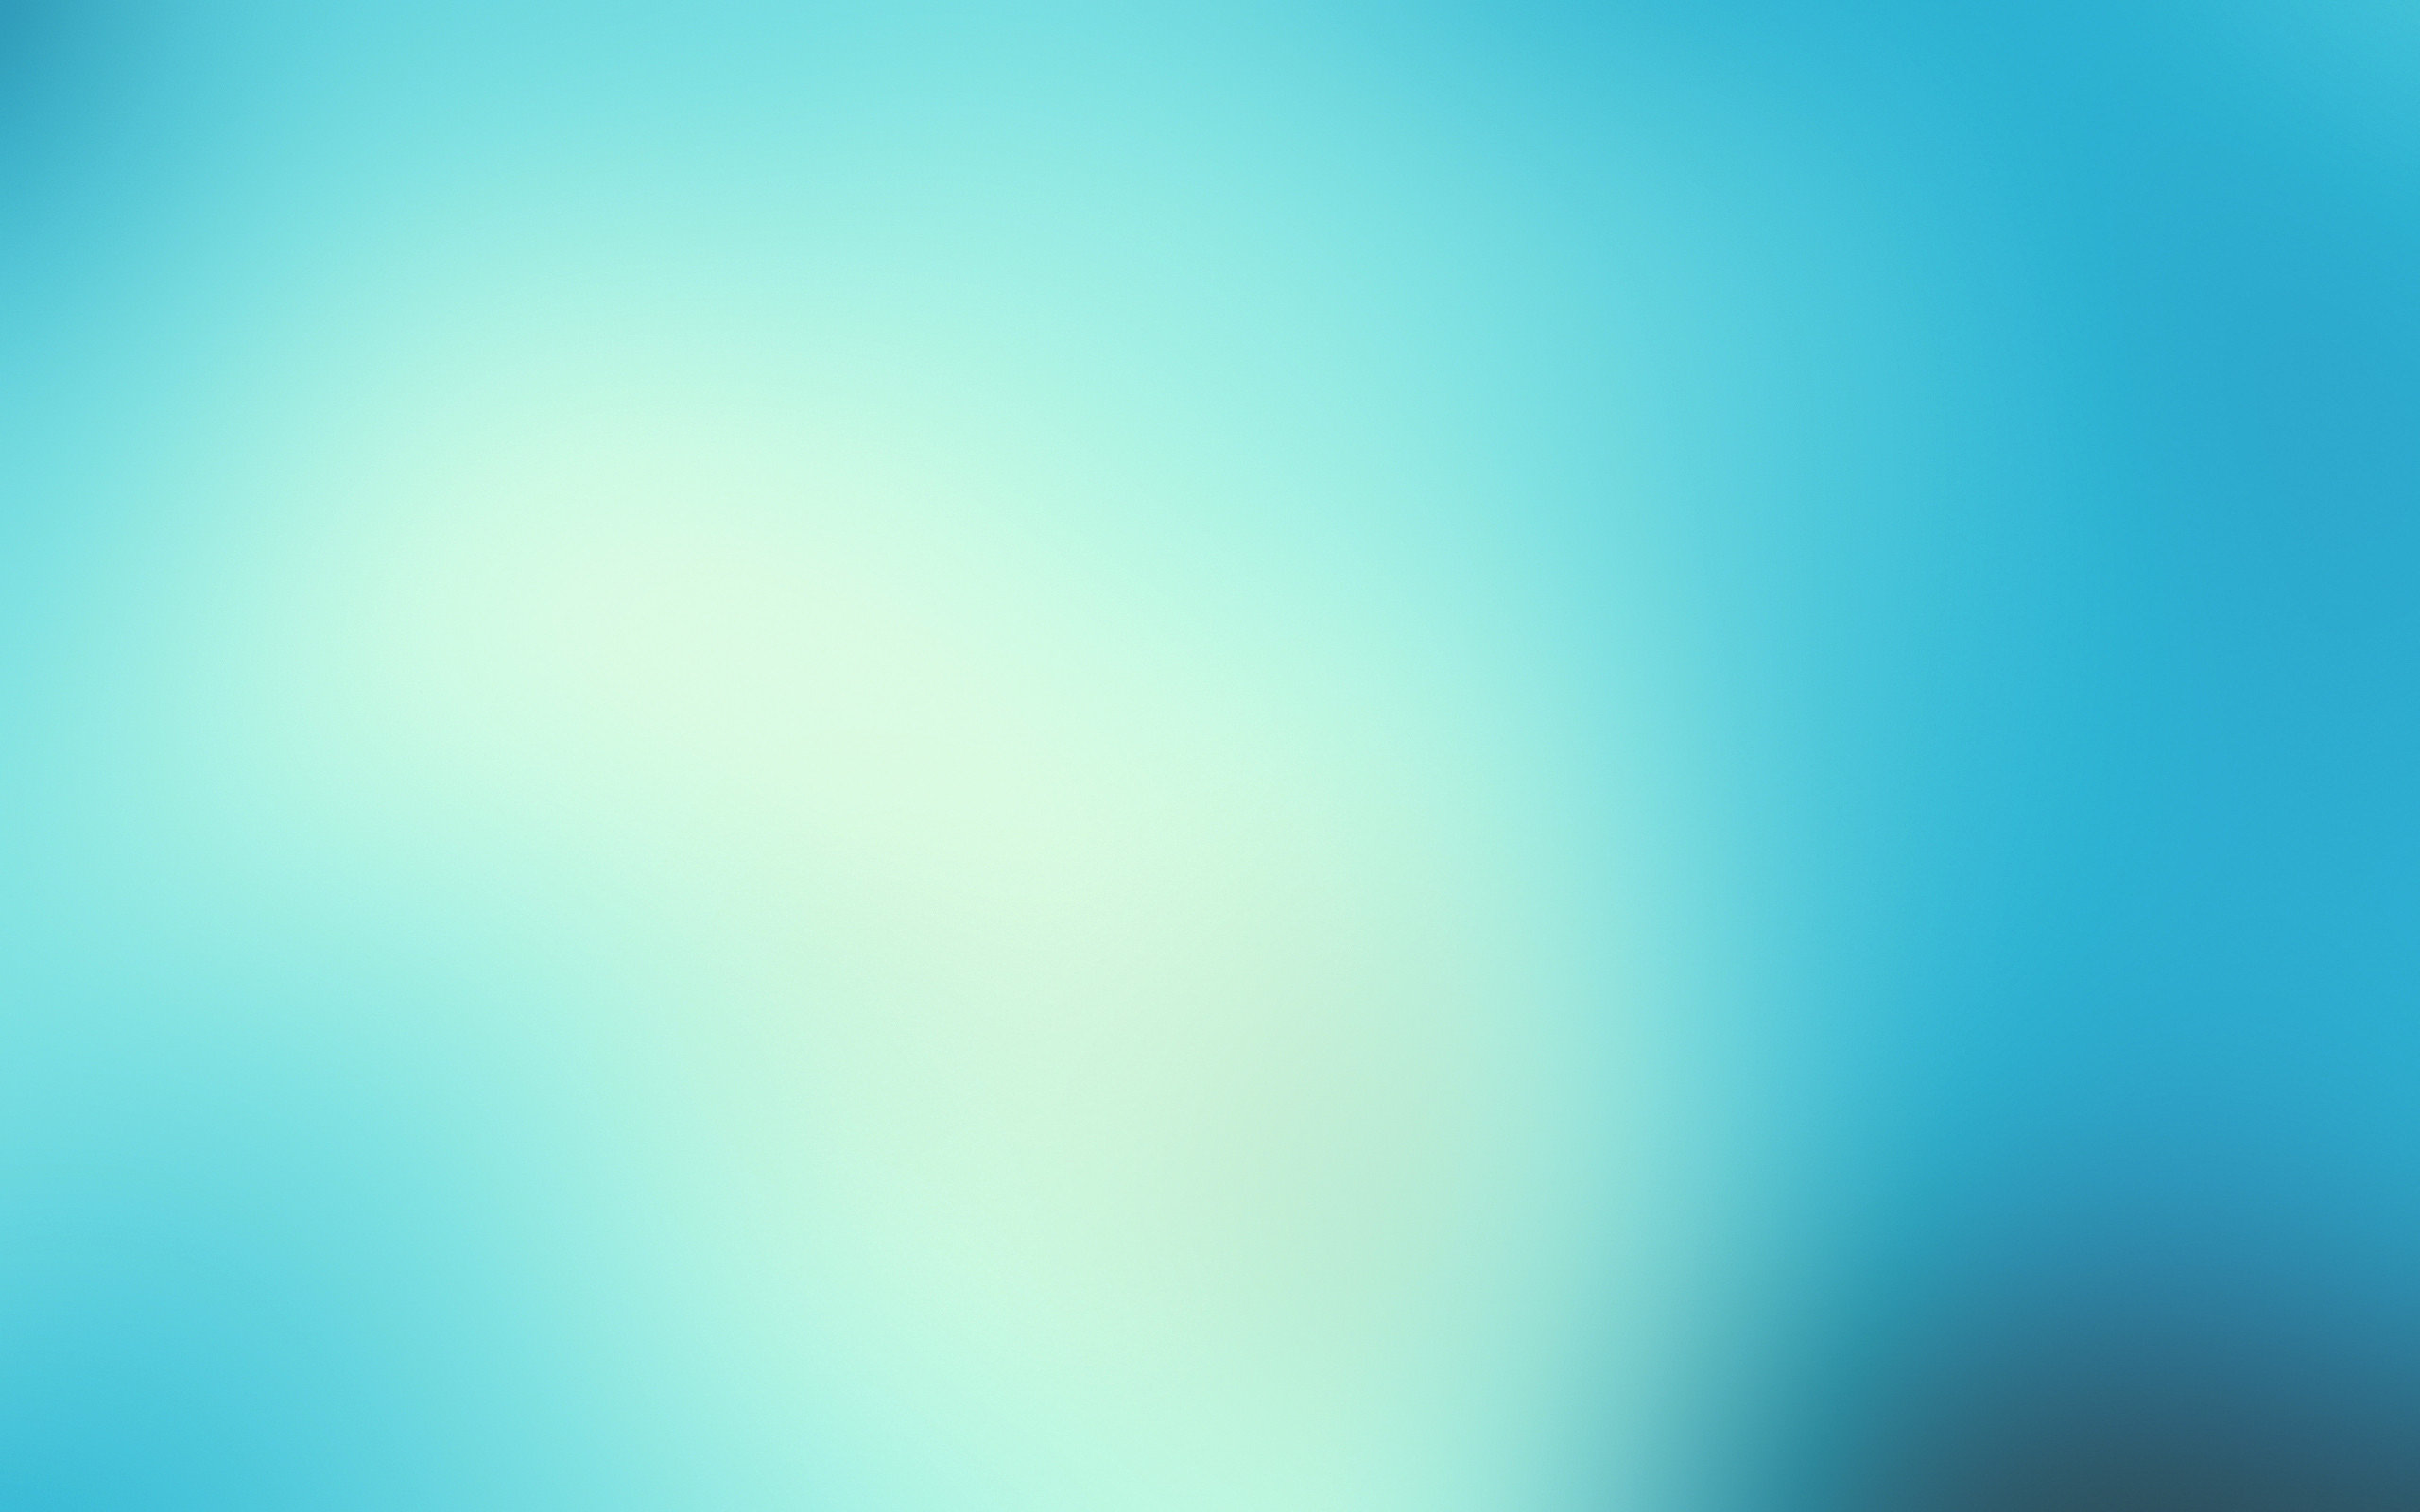 Download Free Baby Blue Background